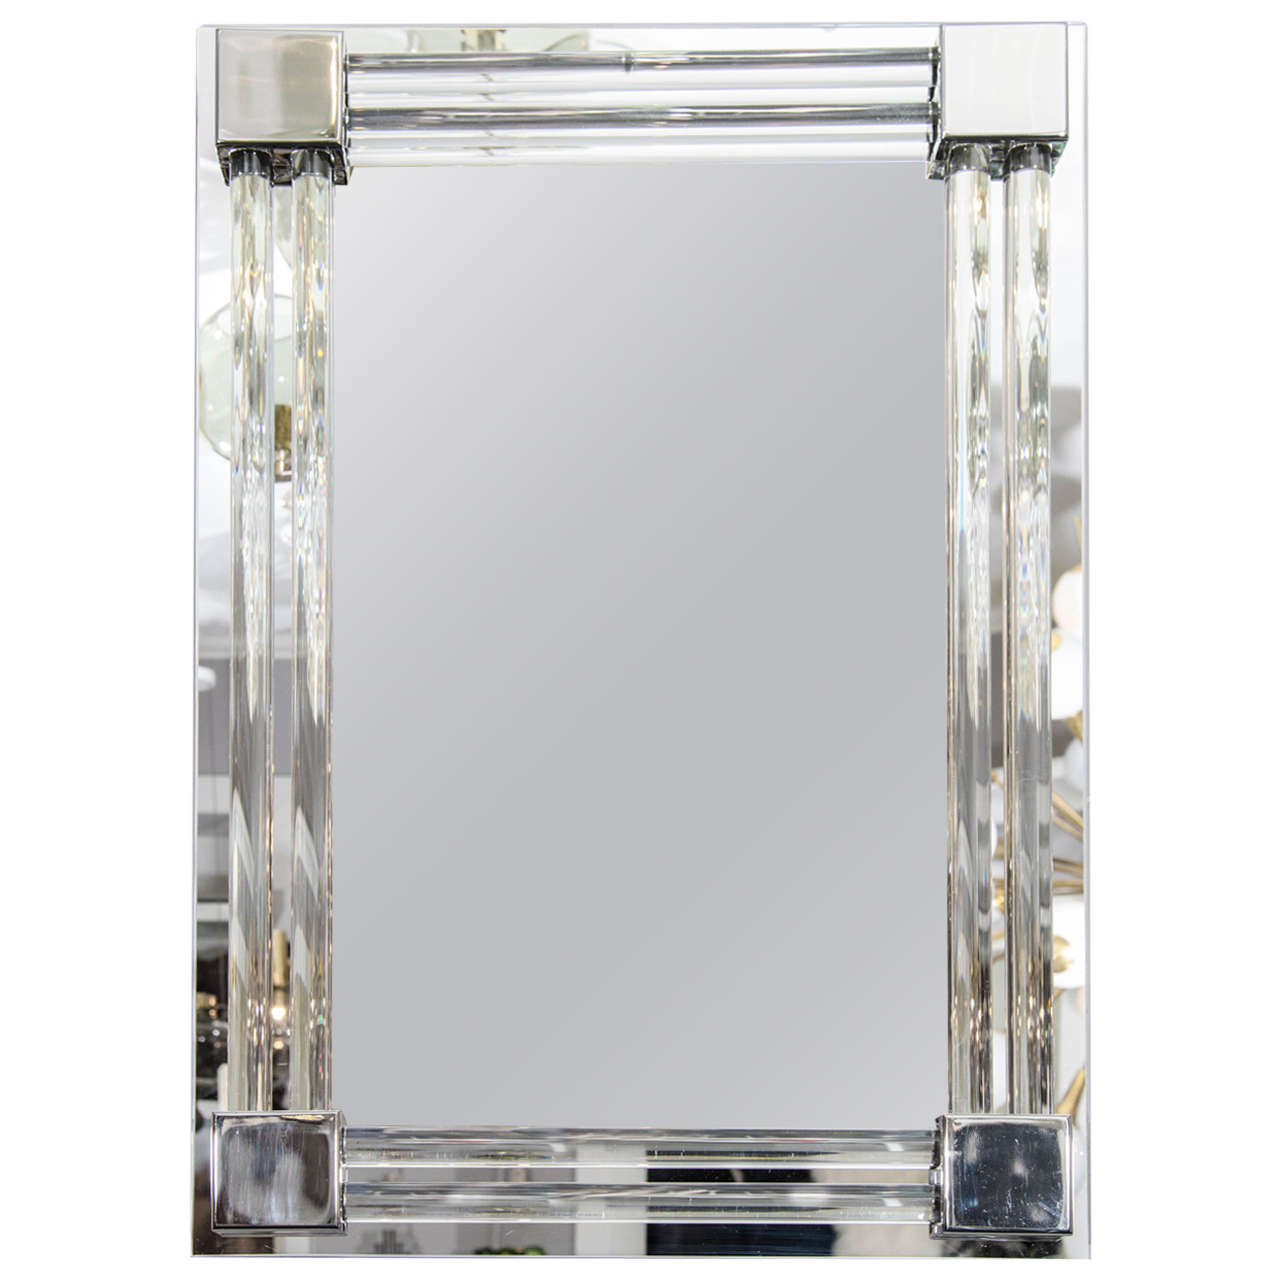 custom glass and rod polished nickel tubular mirror for